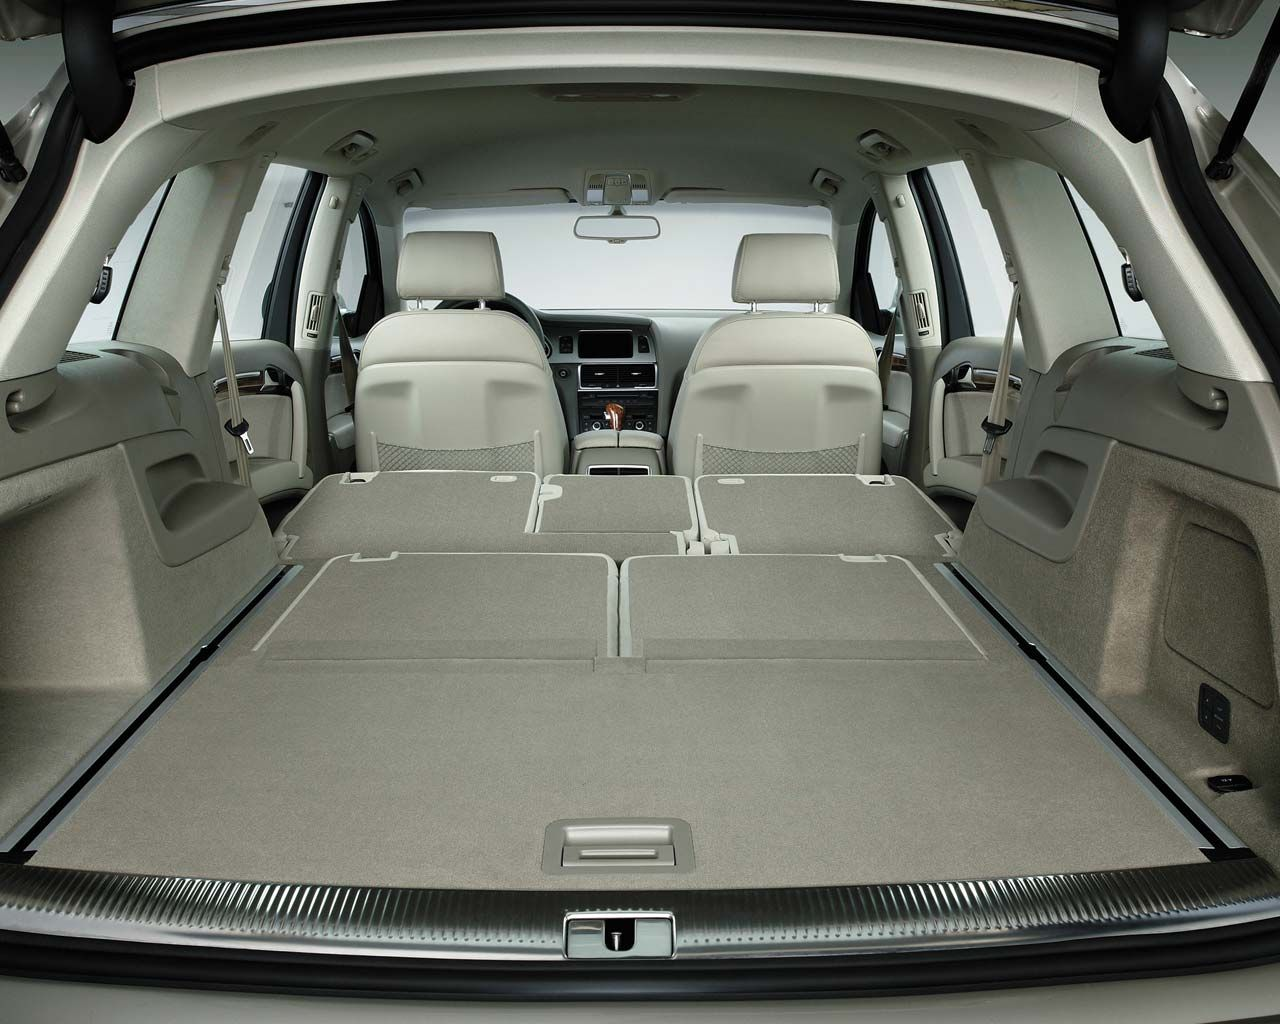 The Audi Q7 Interior Luxurious And Ious